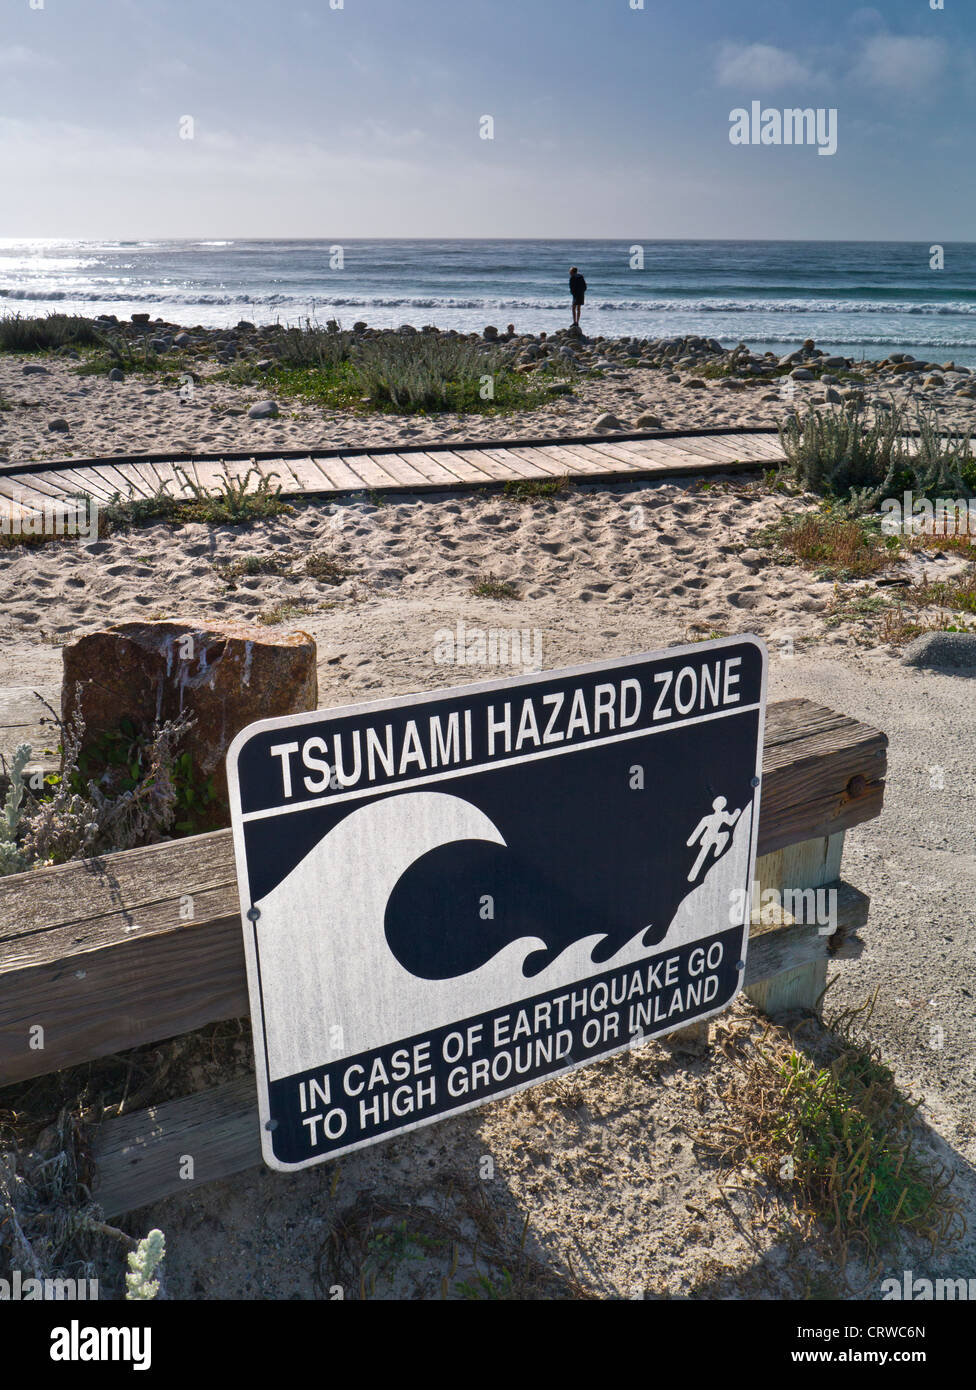 TSUNAMI SIGN CALIFORNIA Tsunami earthquake hazard zone sign on calm coastal 17 mile drive Pacific Grove Monterey - Stock Image